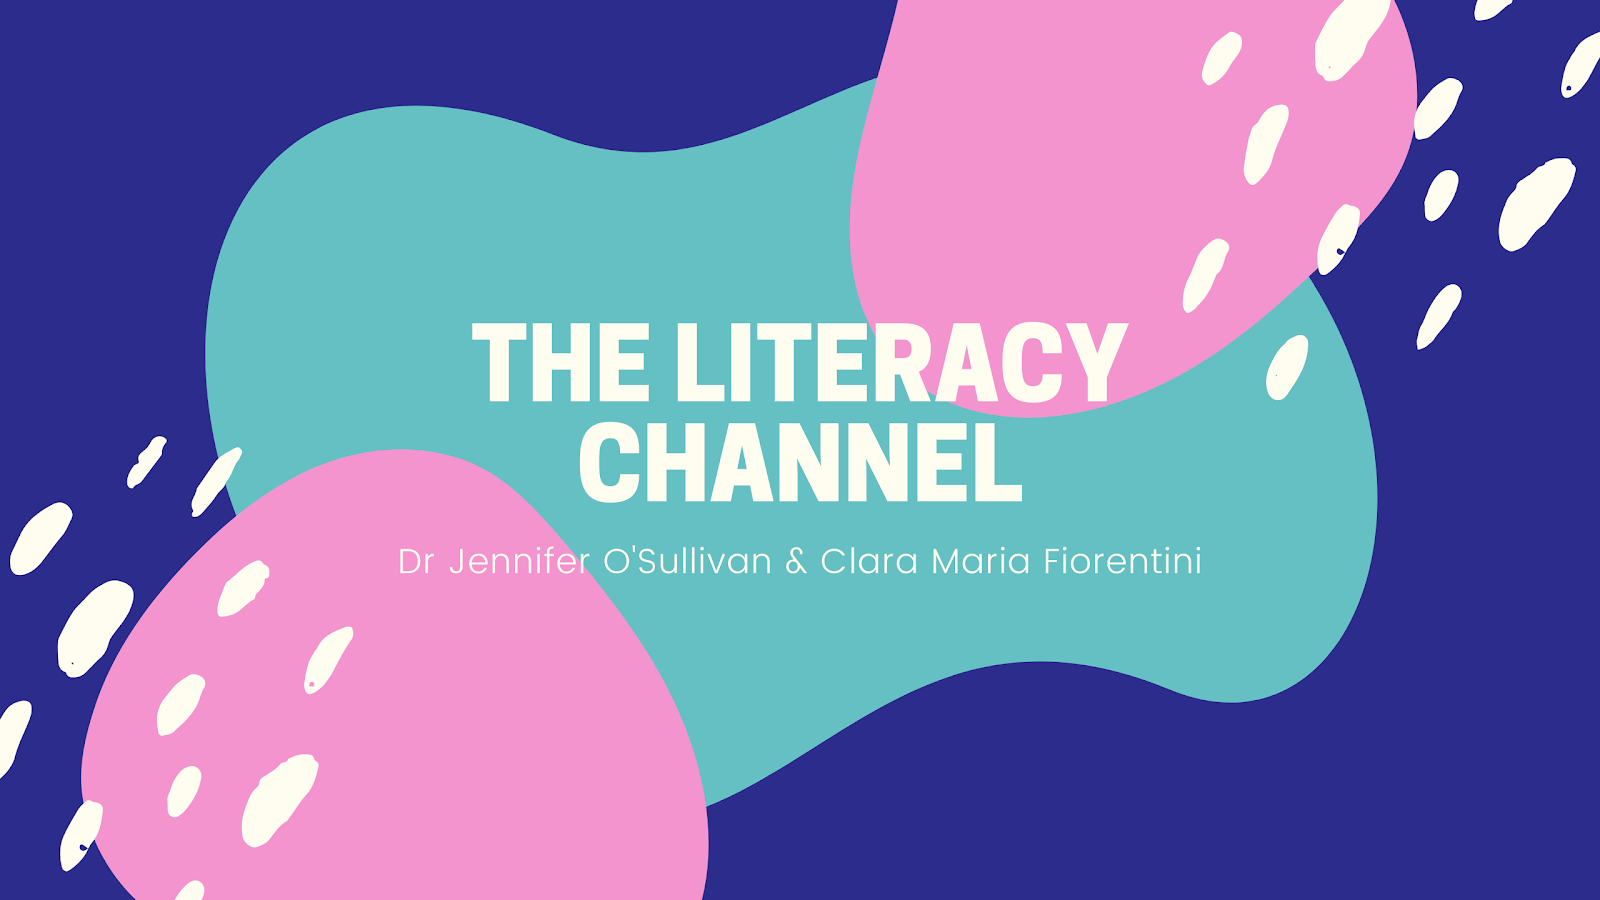 The Literacy Channel